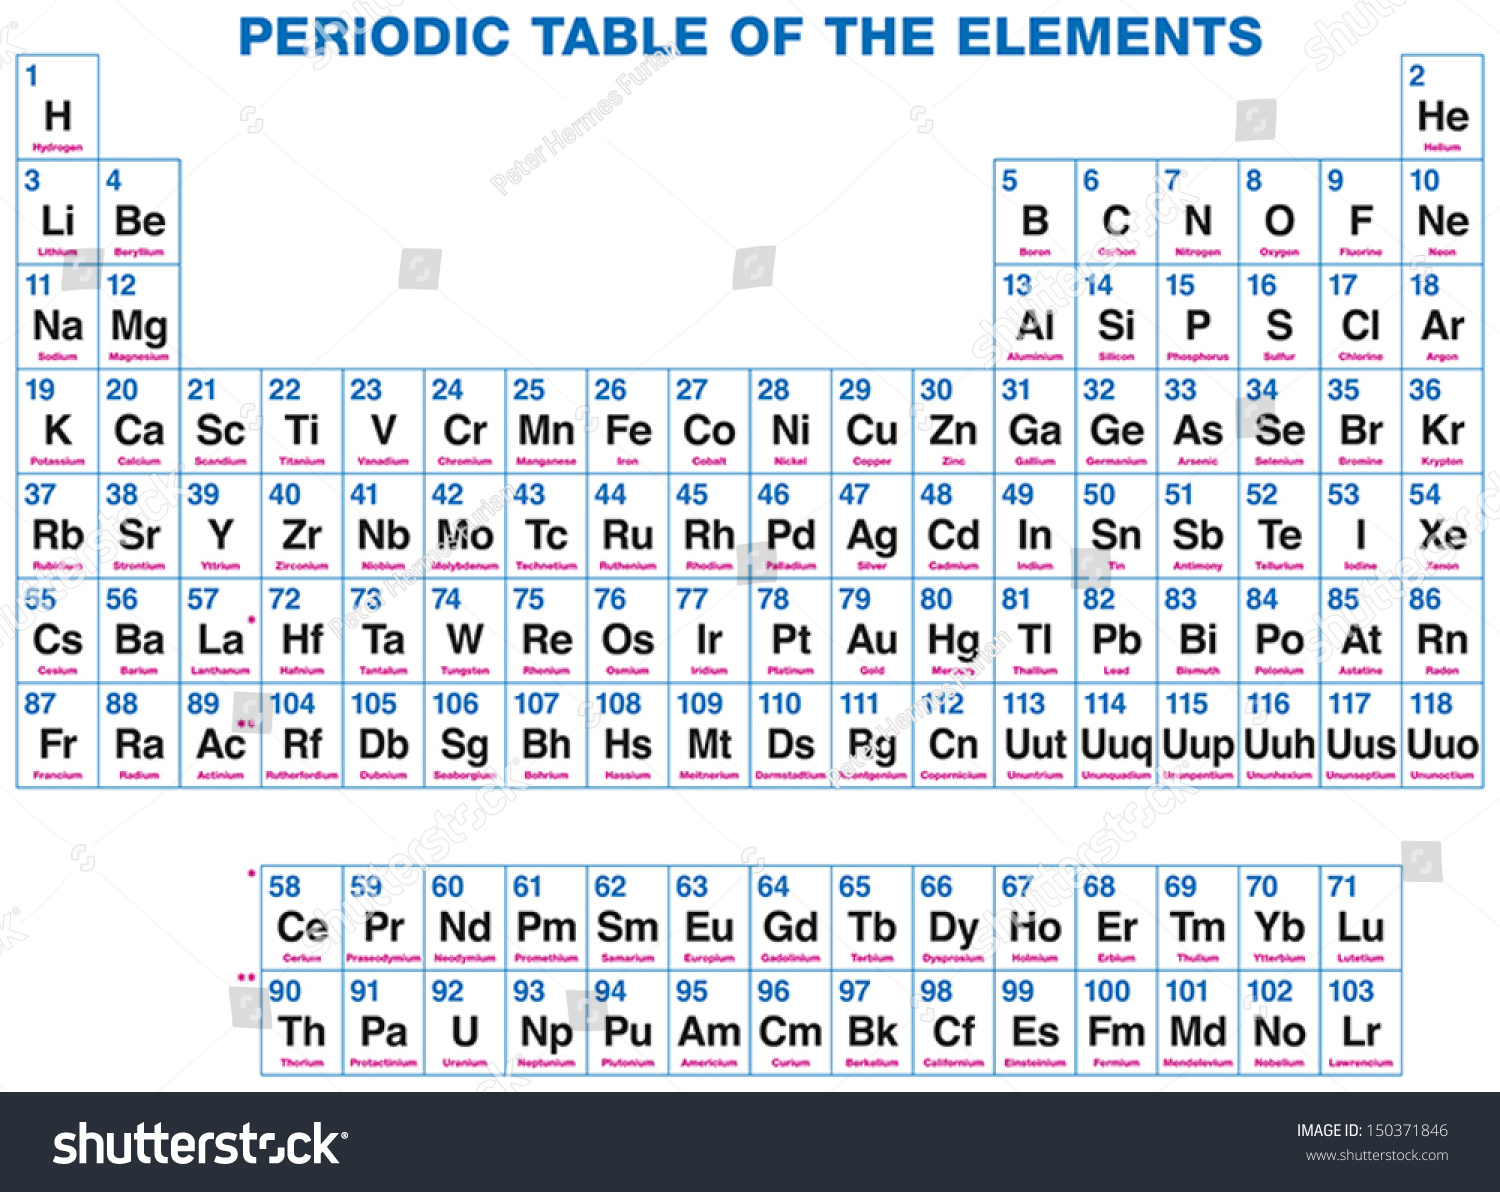 Periodic table of elements essay